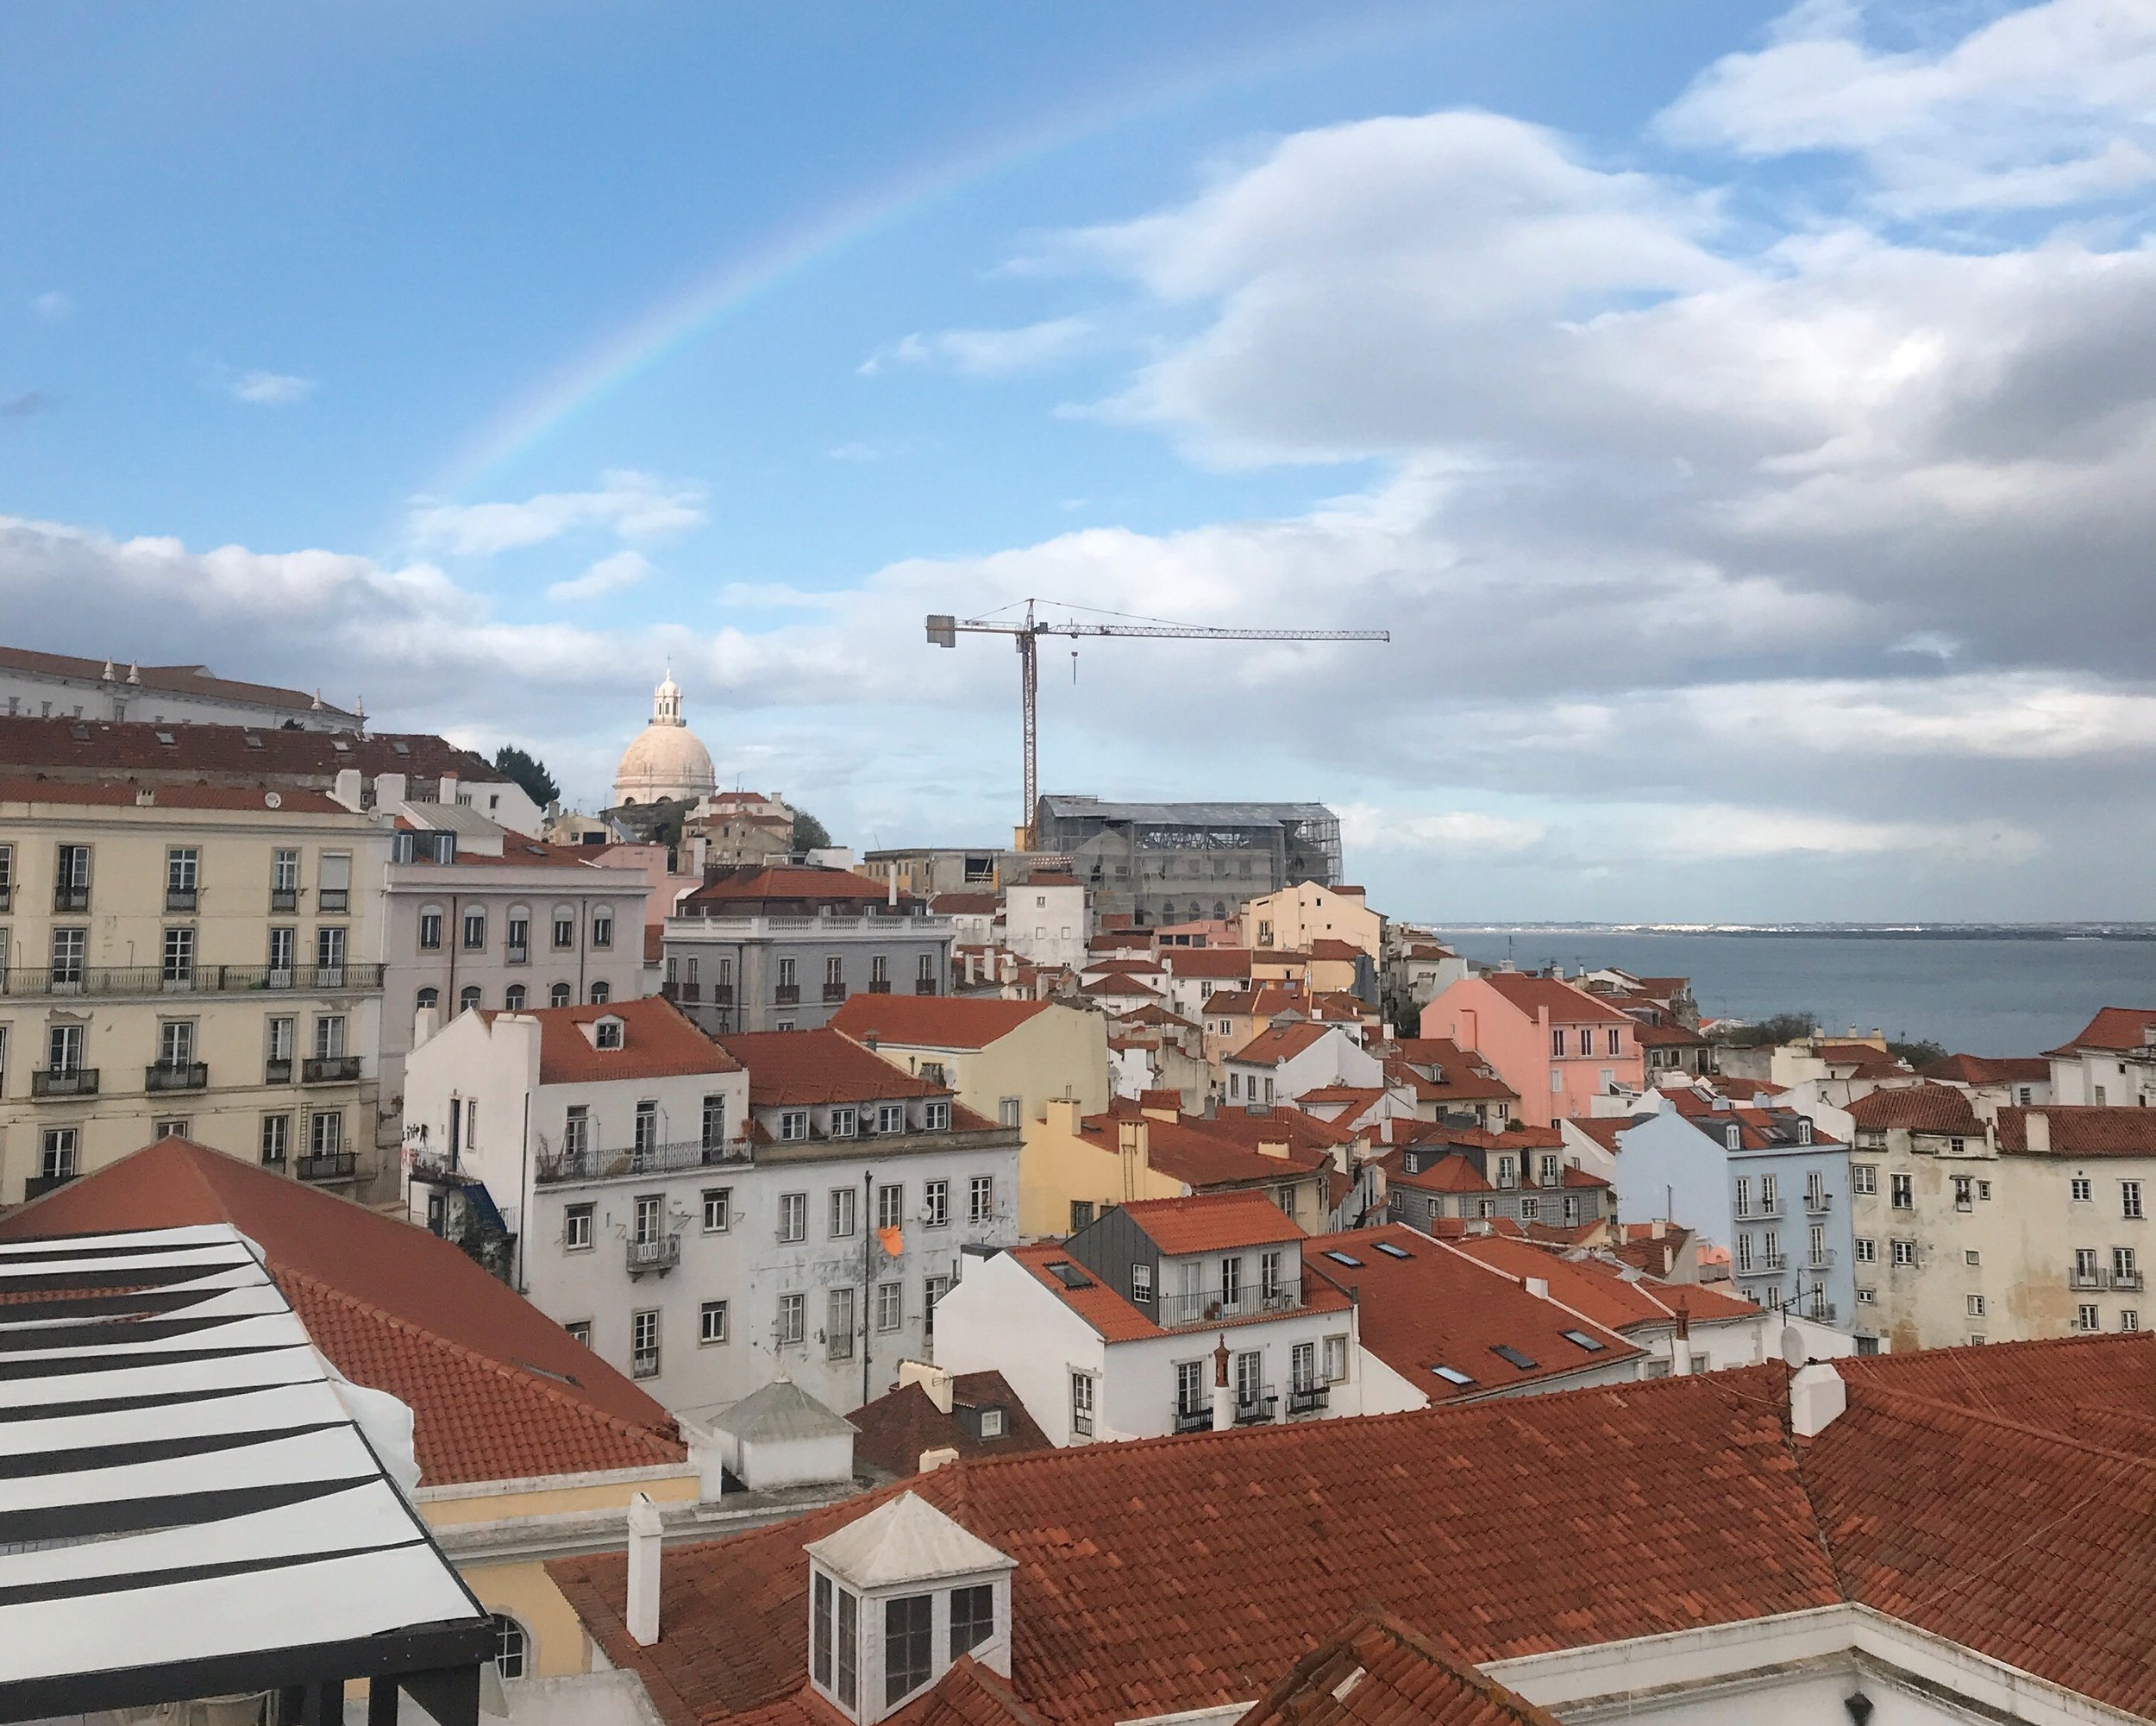 The Ultimate Lisbon Guide - What to Know, When to Go, and 12+ Unique Things to Do (That Aren't Riding Tram 28) FREE MAP! | HallAroundTheWorld